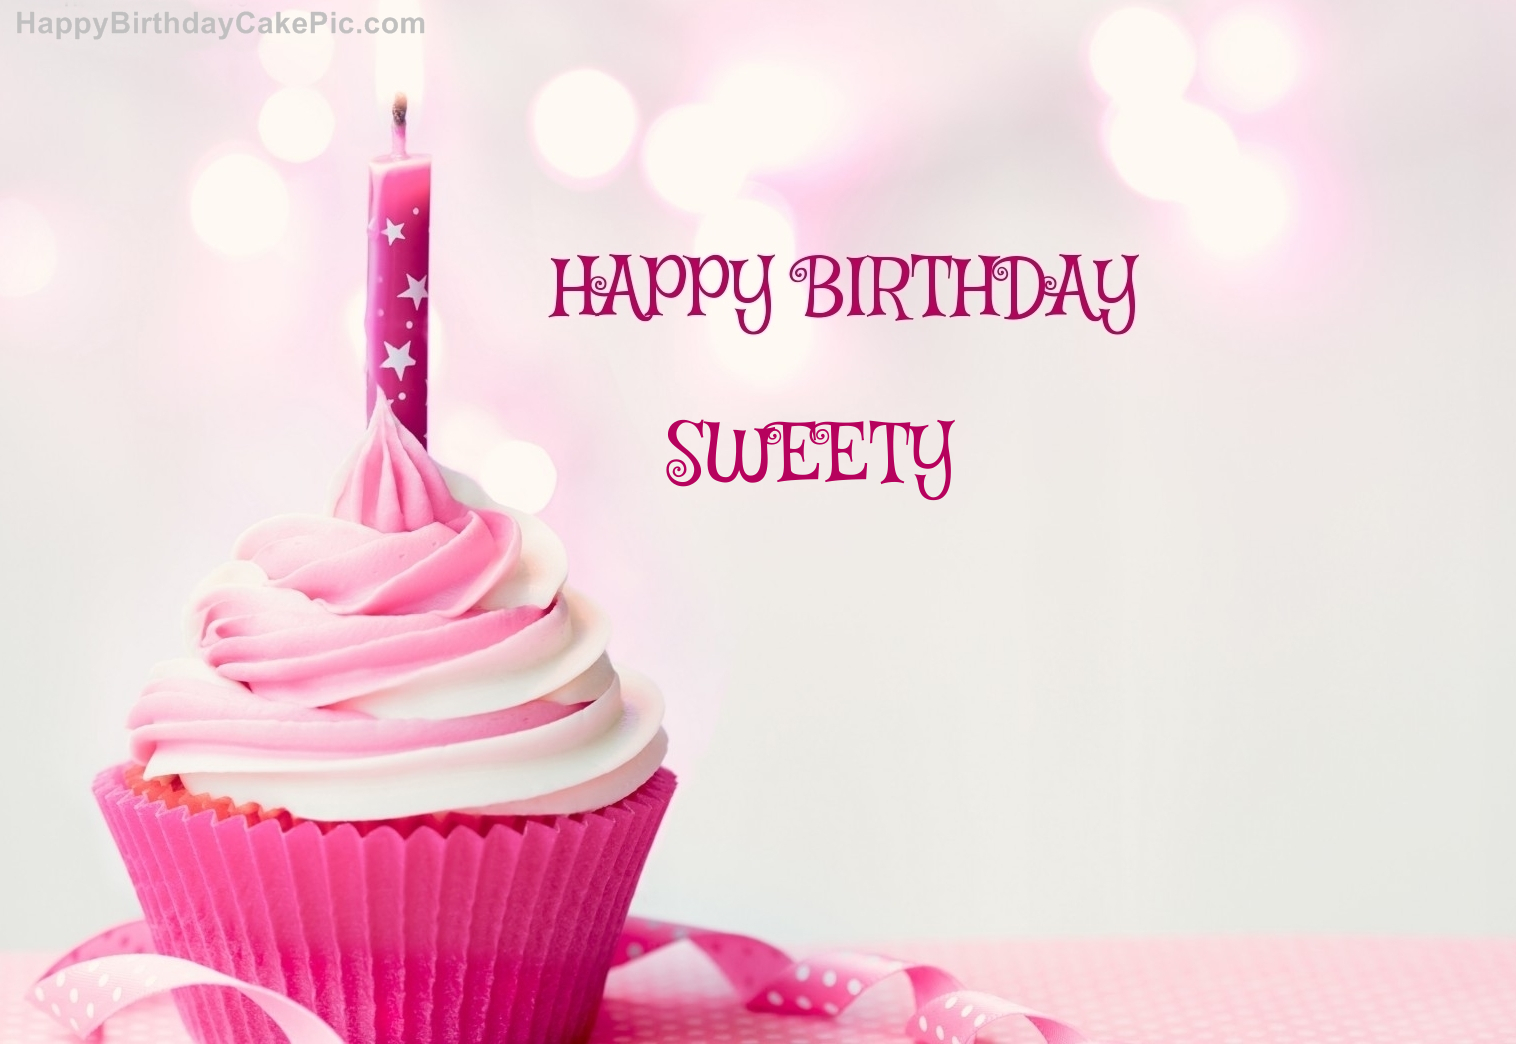 Happy Birthday Cupcake Candle Pink Cake For Sweety